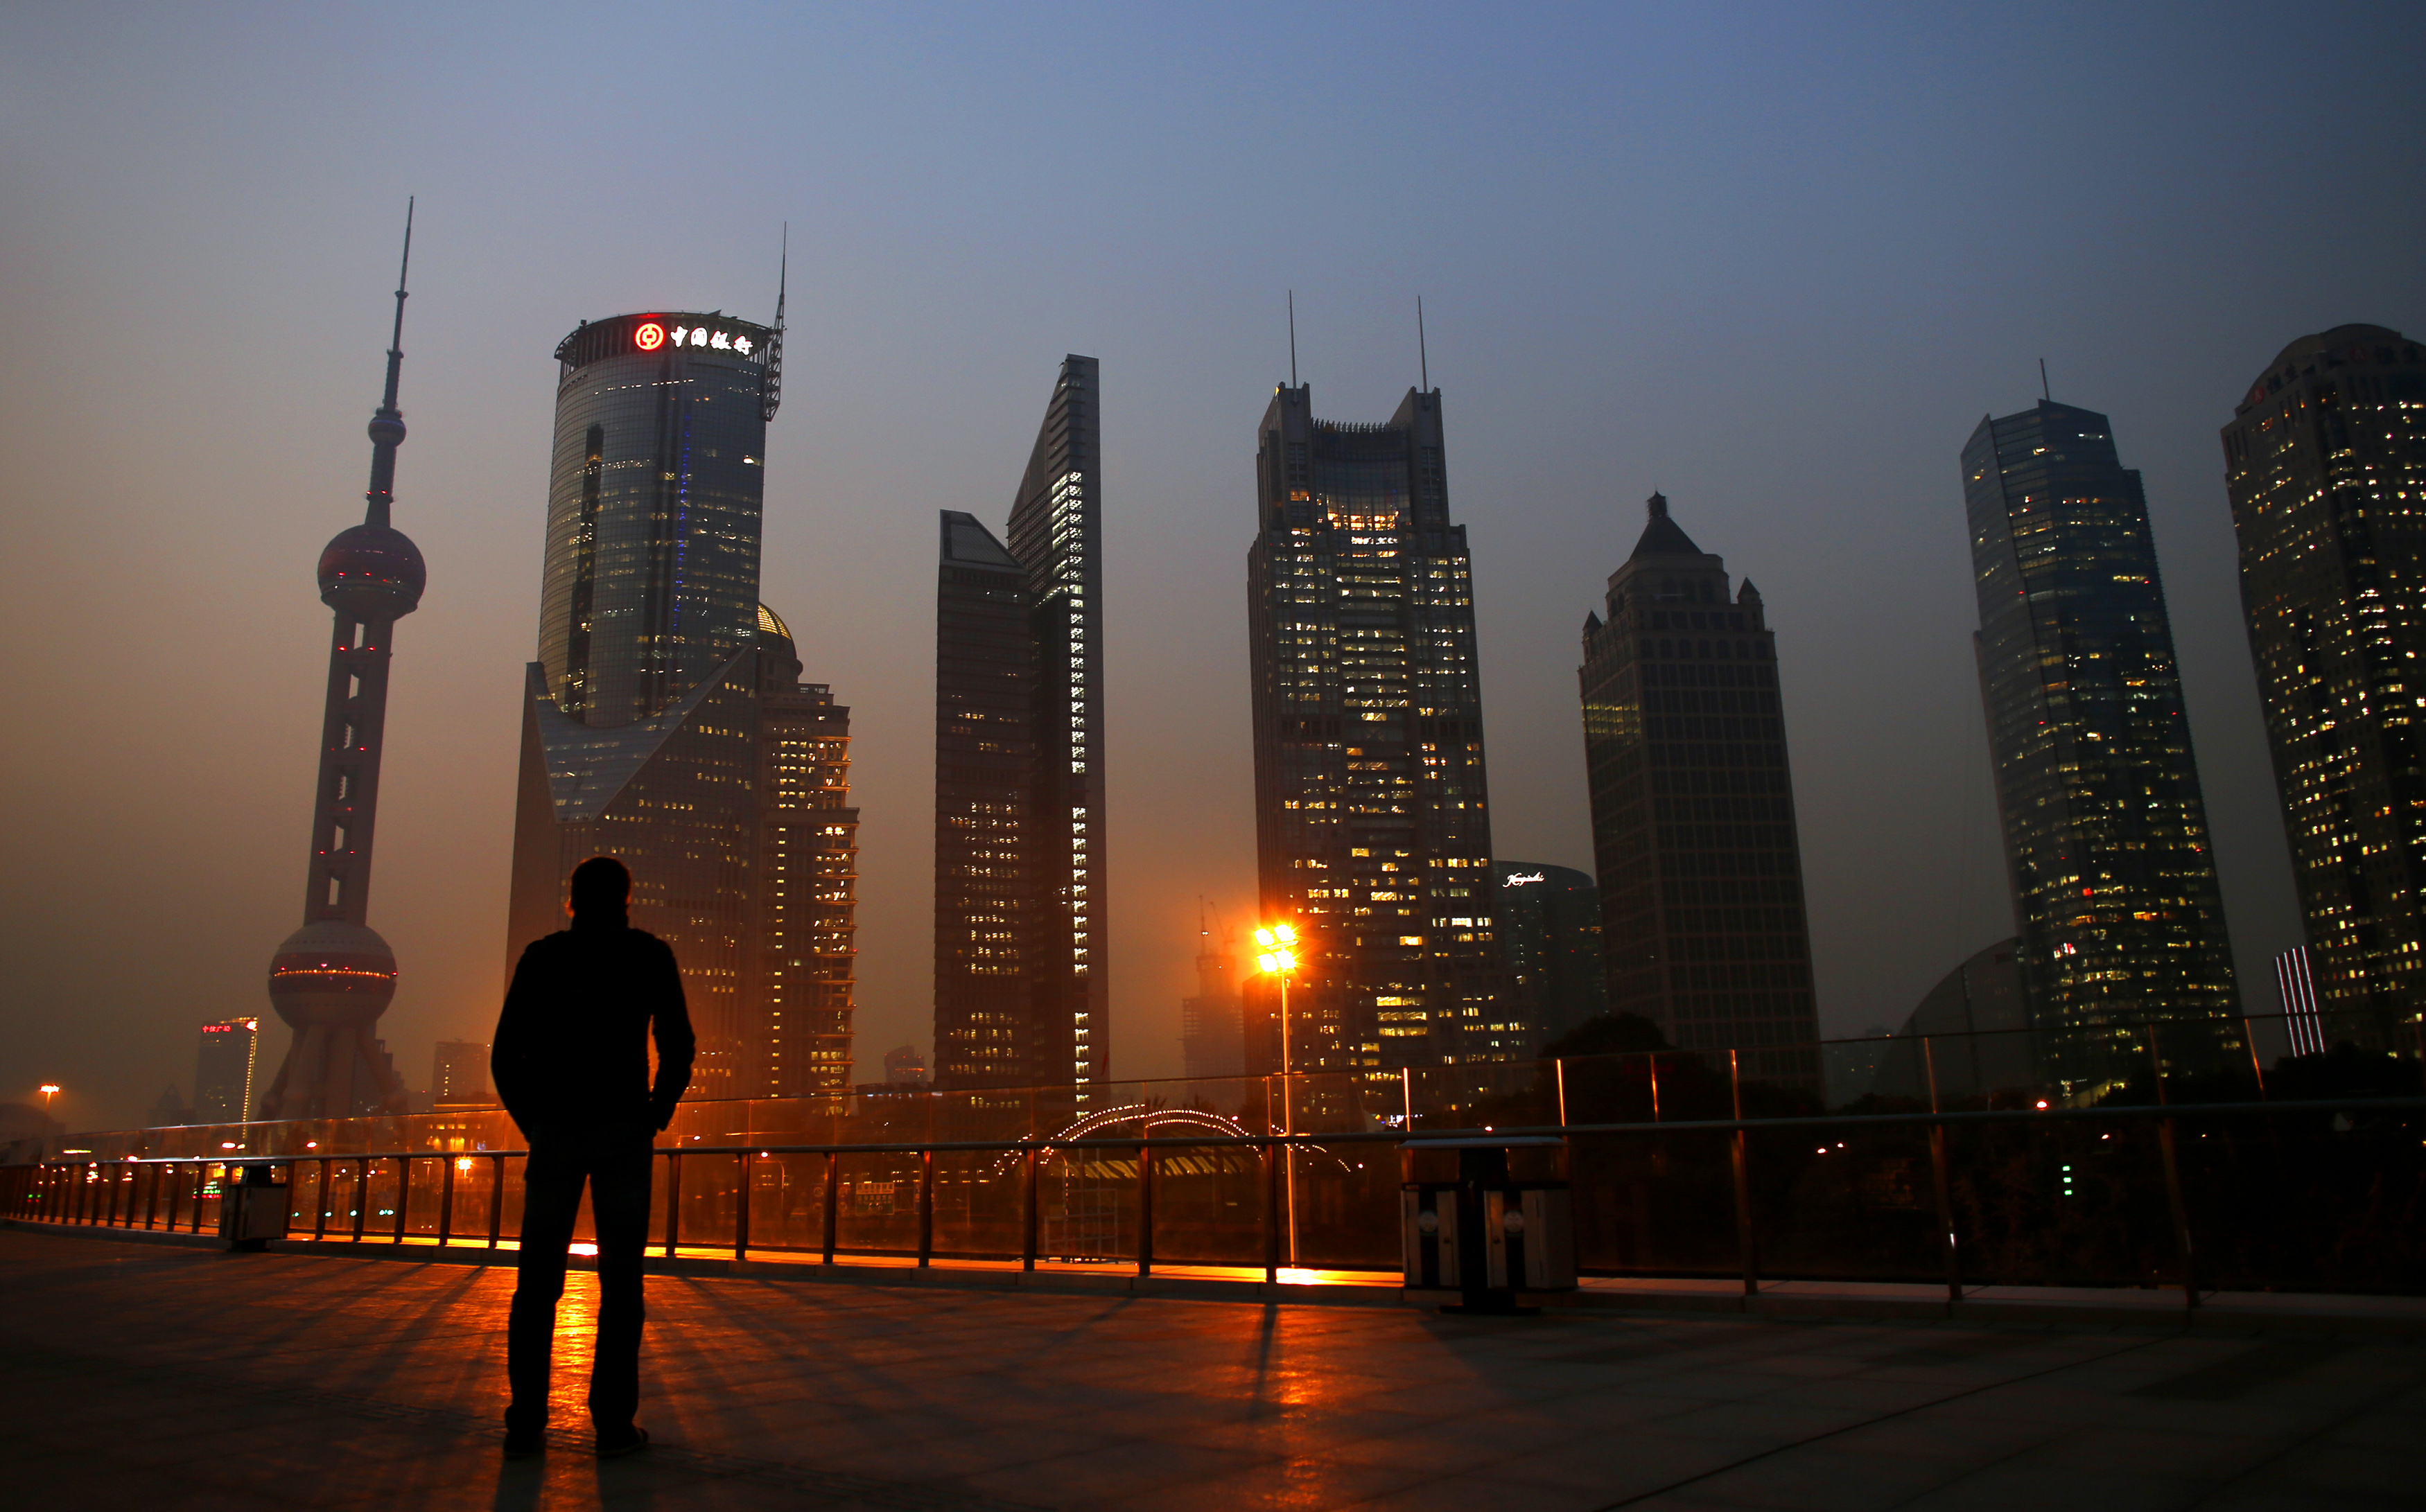 China's economy expands 6.8% in third quarter